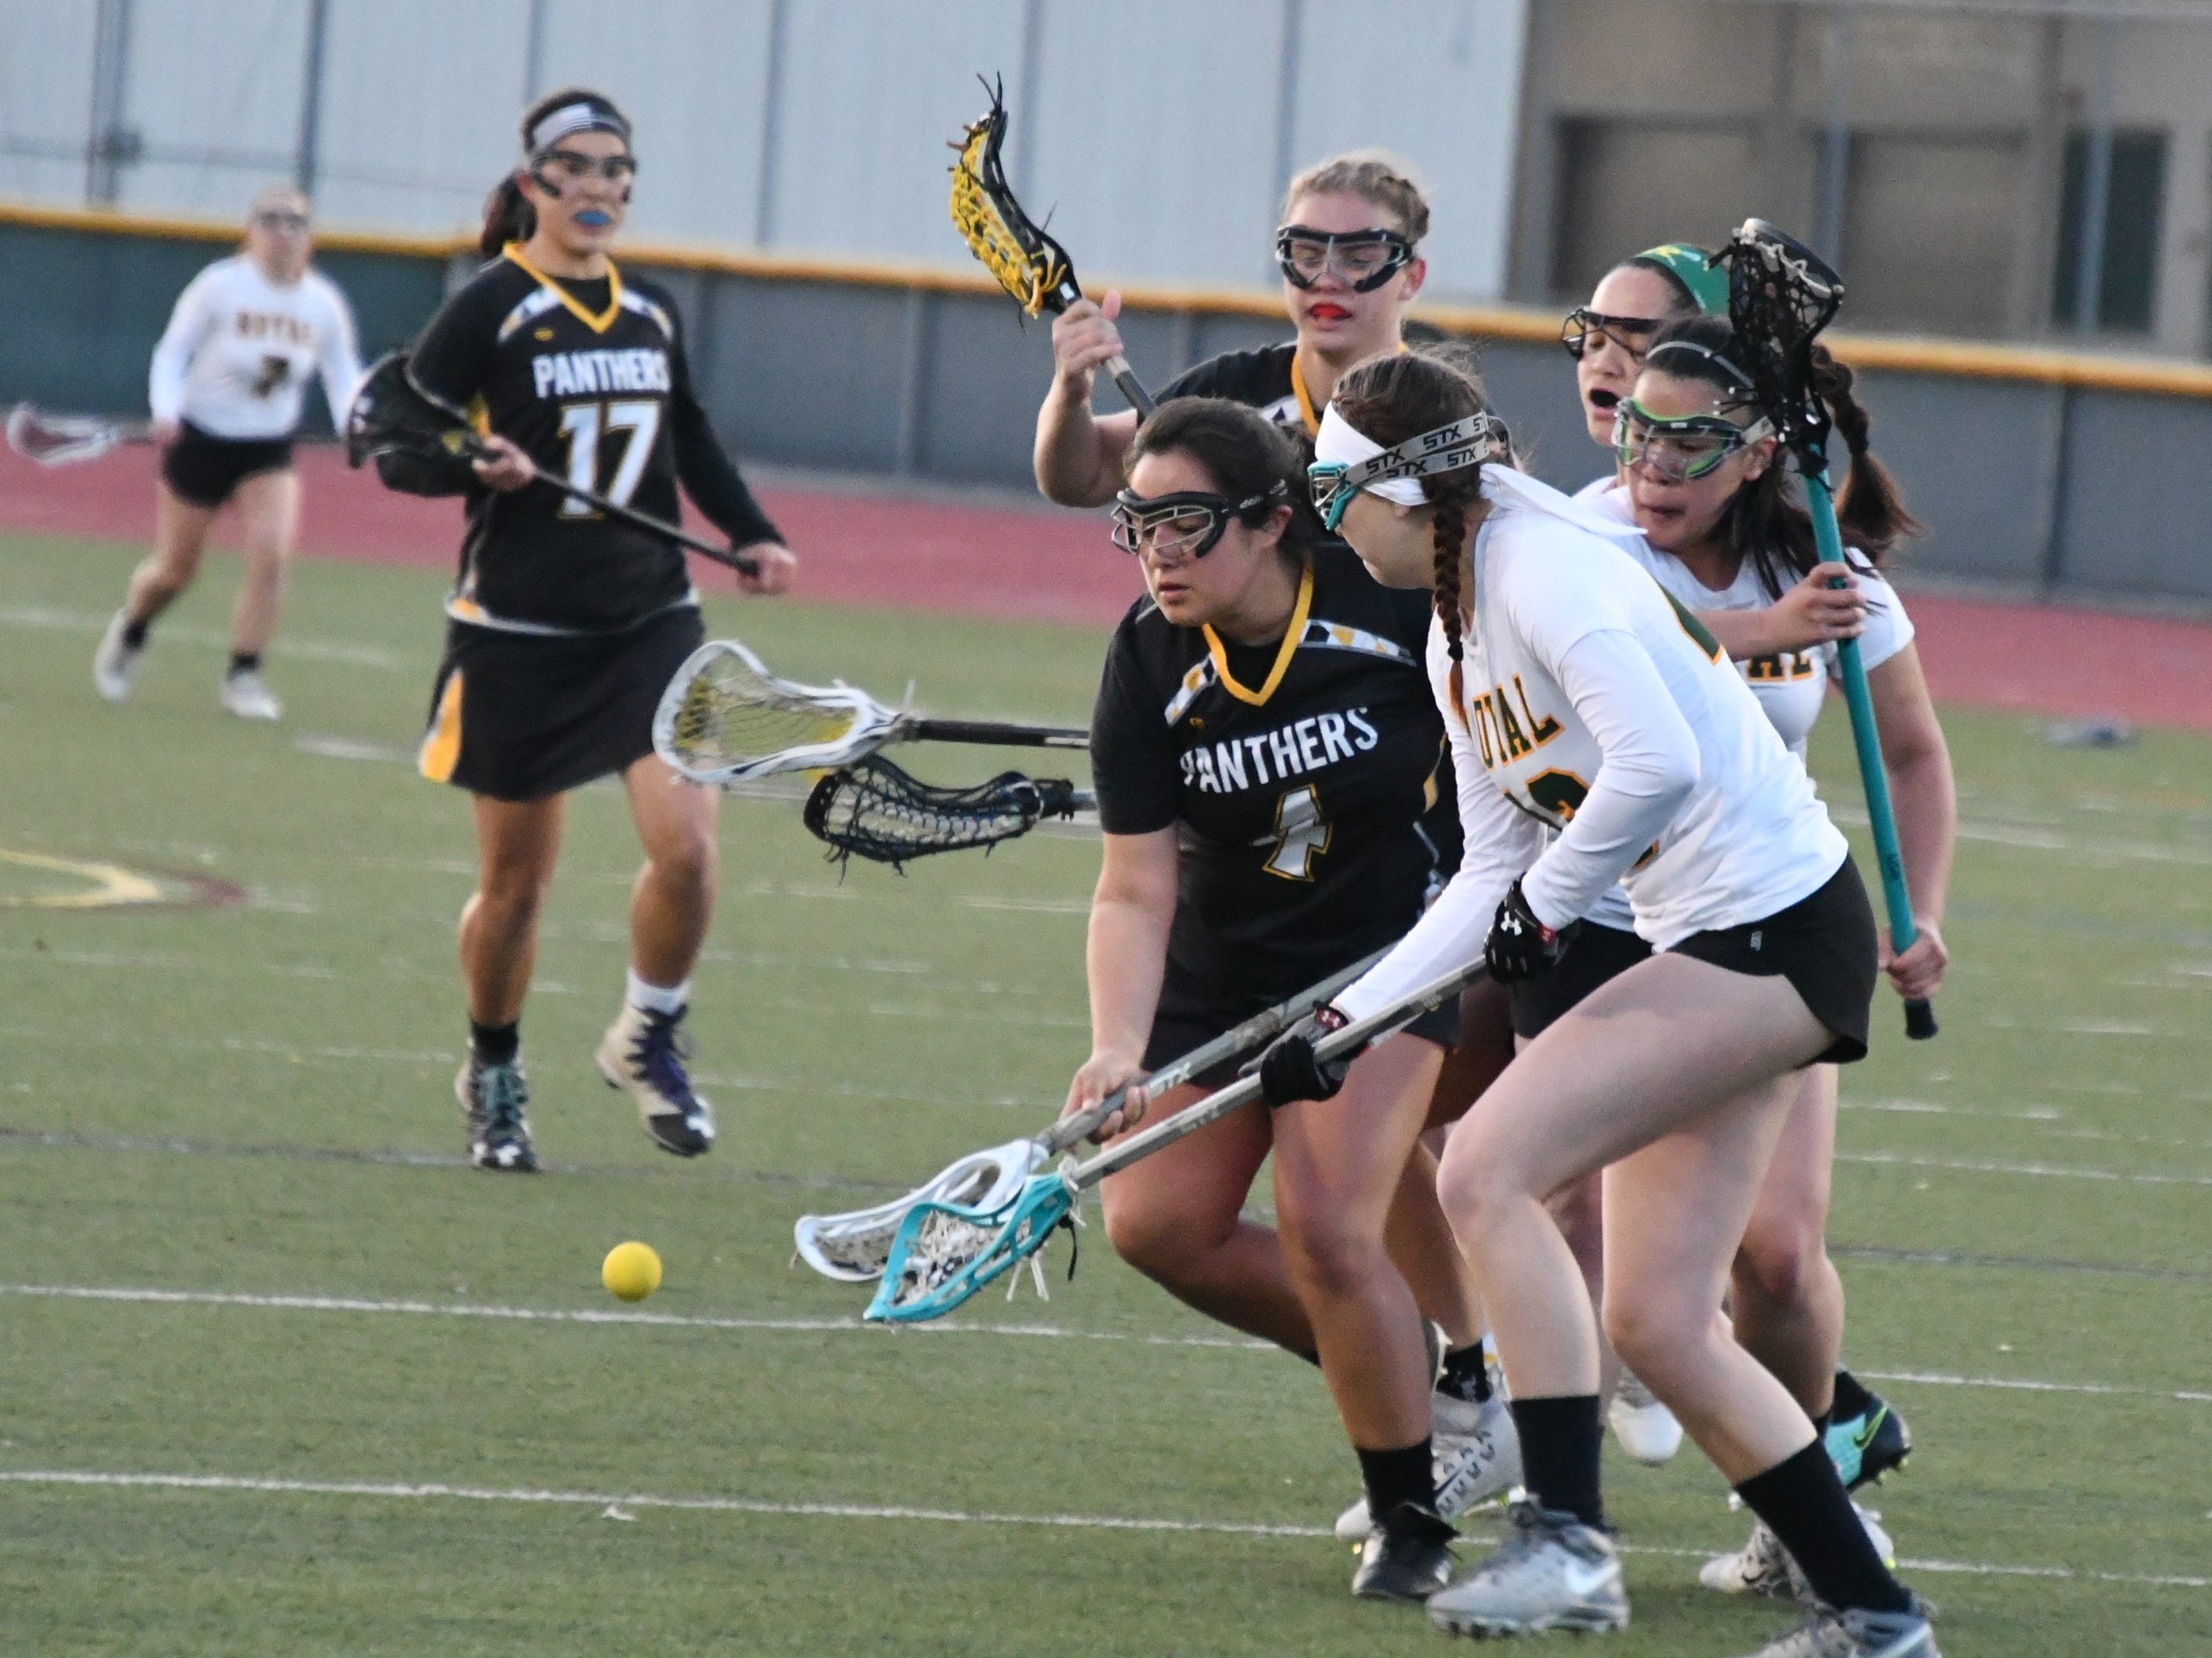 Newbury Park senior Katryna De La Cruz scoops up a ground ball at Royal High on March 7. The Panthers won, 24-3.